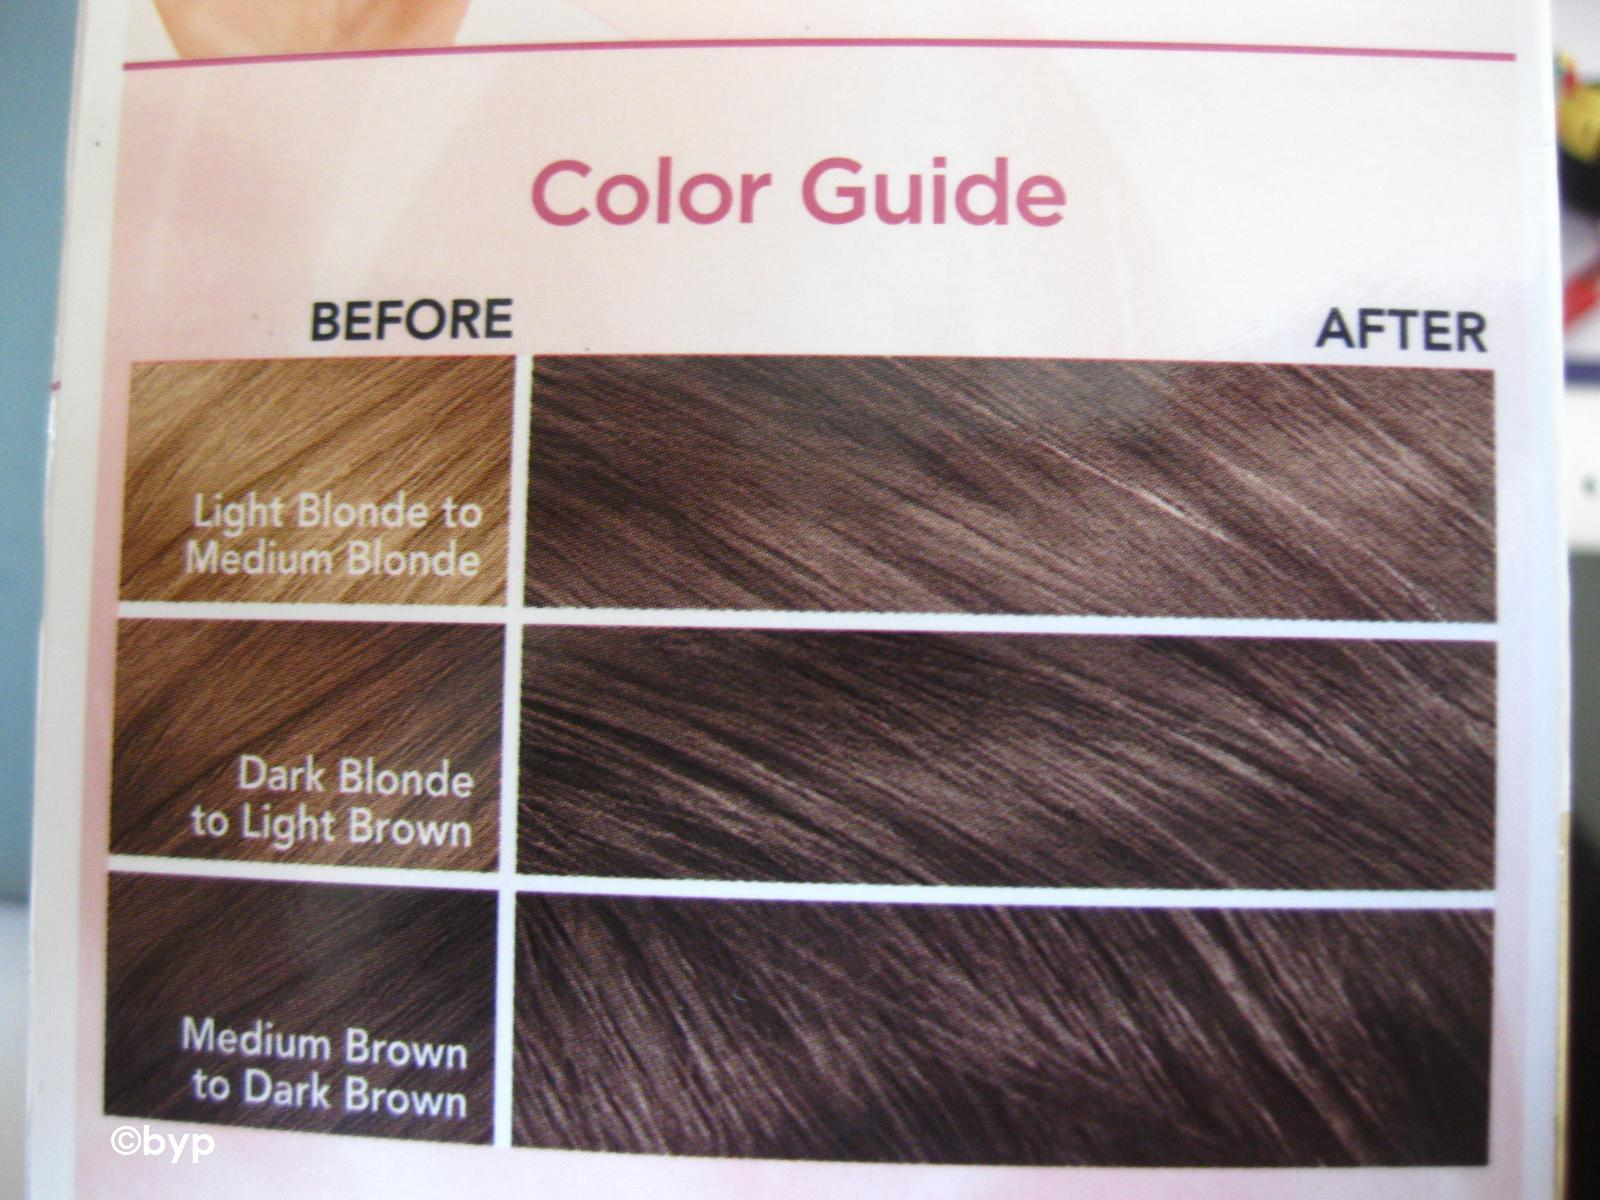 Paul mitchell hair colour chart hair colors amp styles pinterest honey brown hair color chart nvjuhfo Image collections